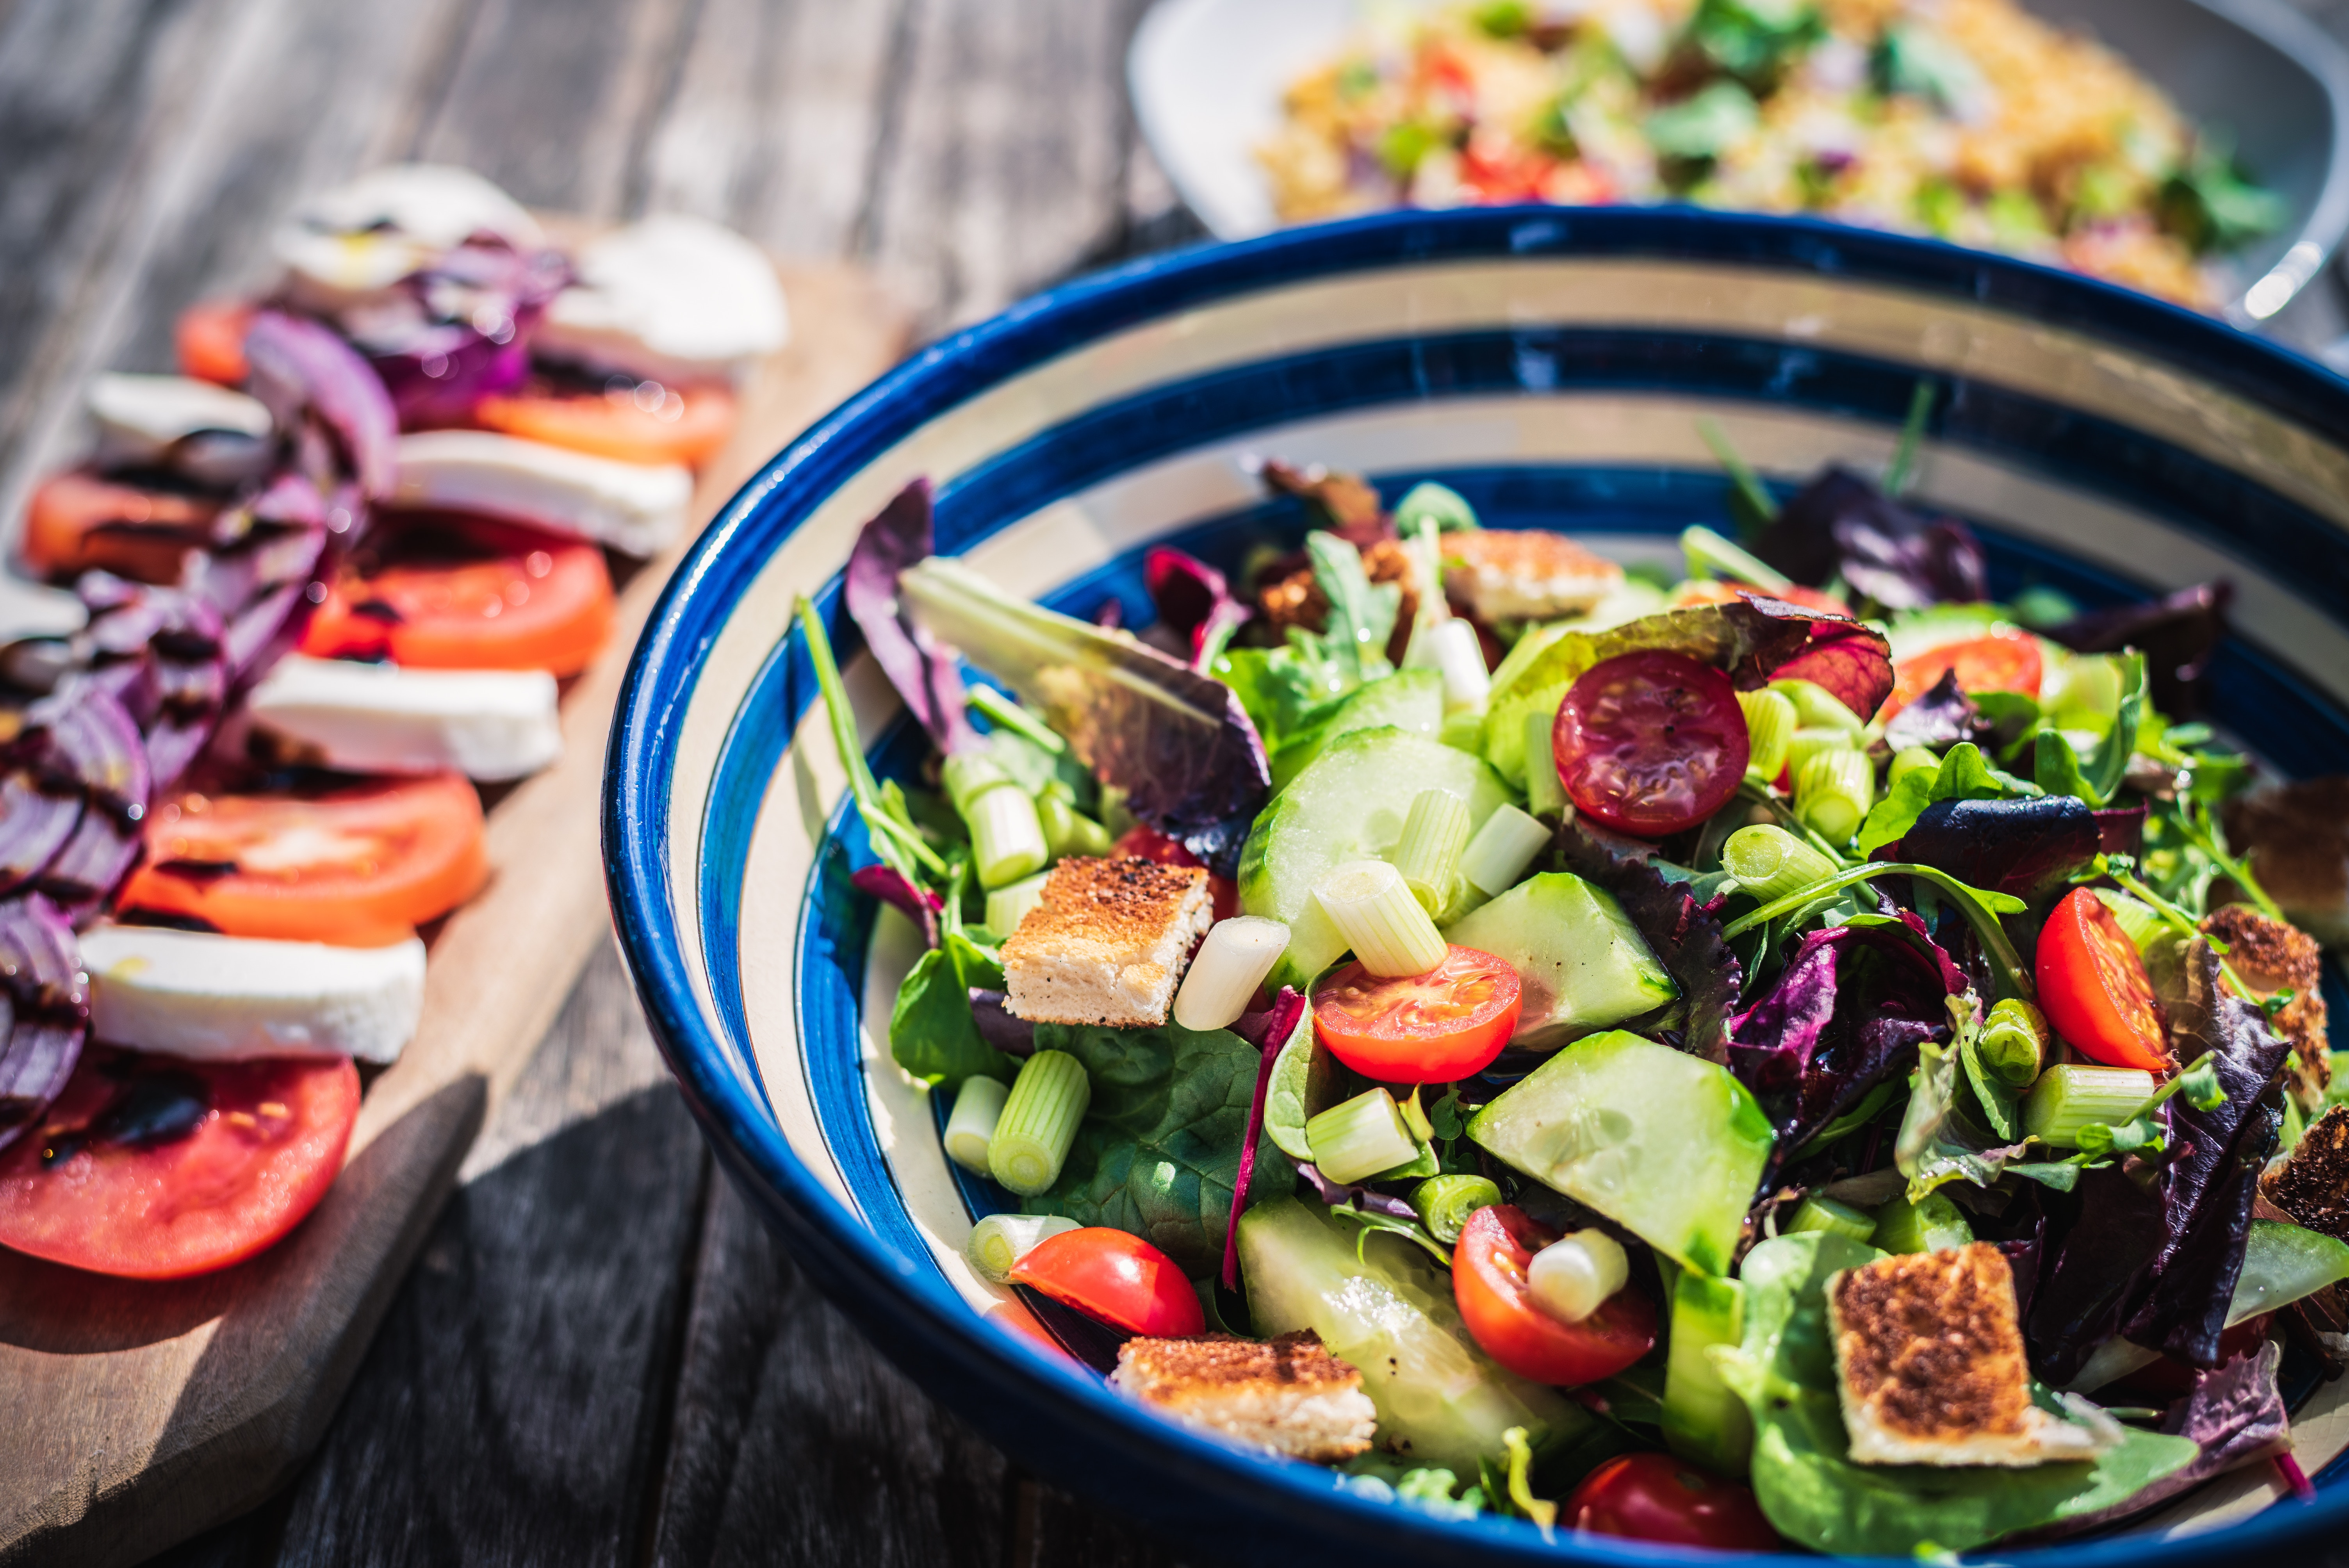 Working with an expert consultant to make your menu healthier can attract more diners to your establishment.